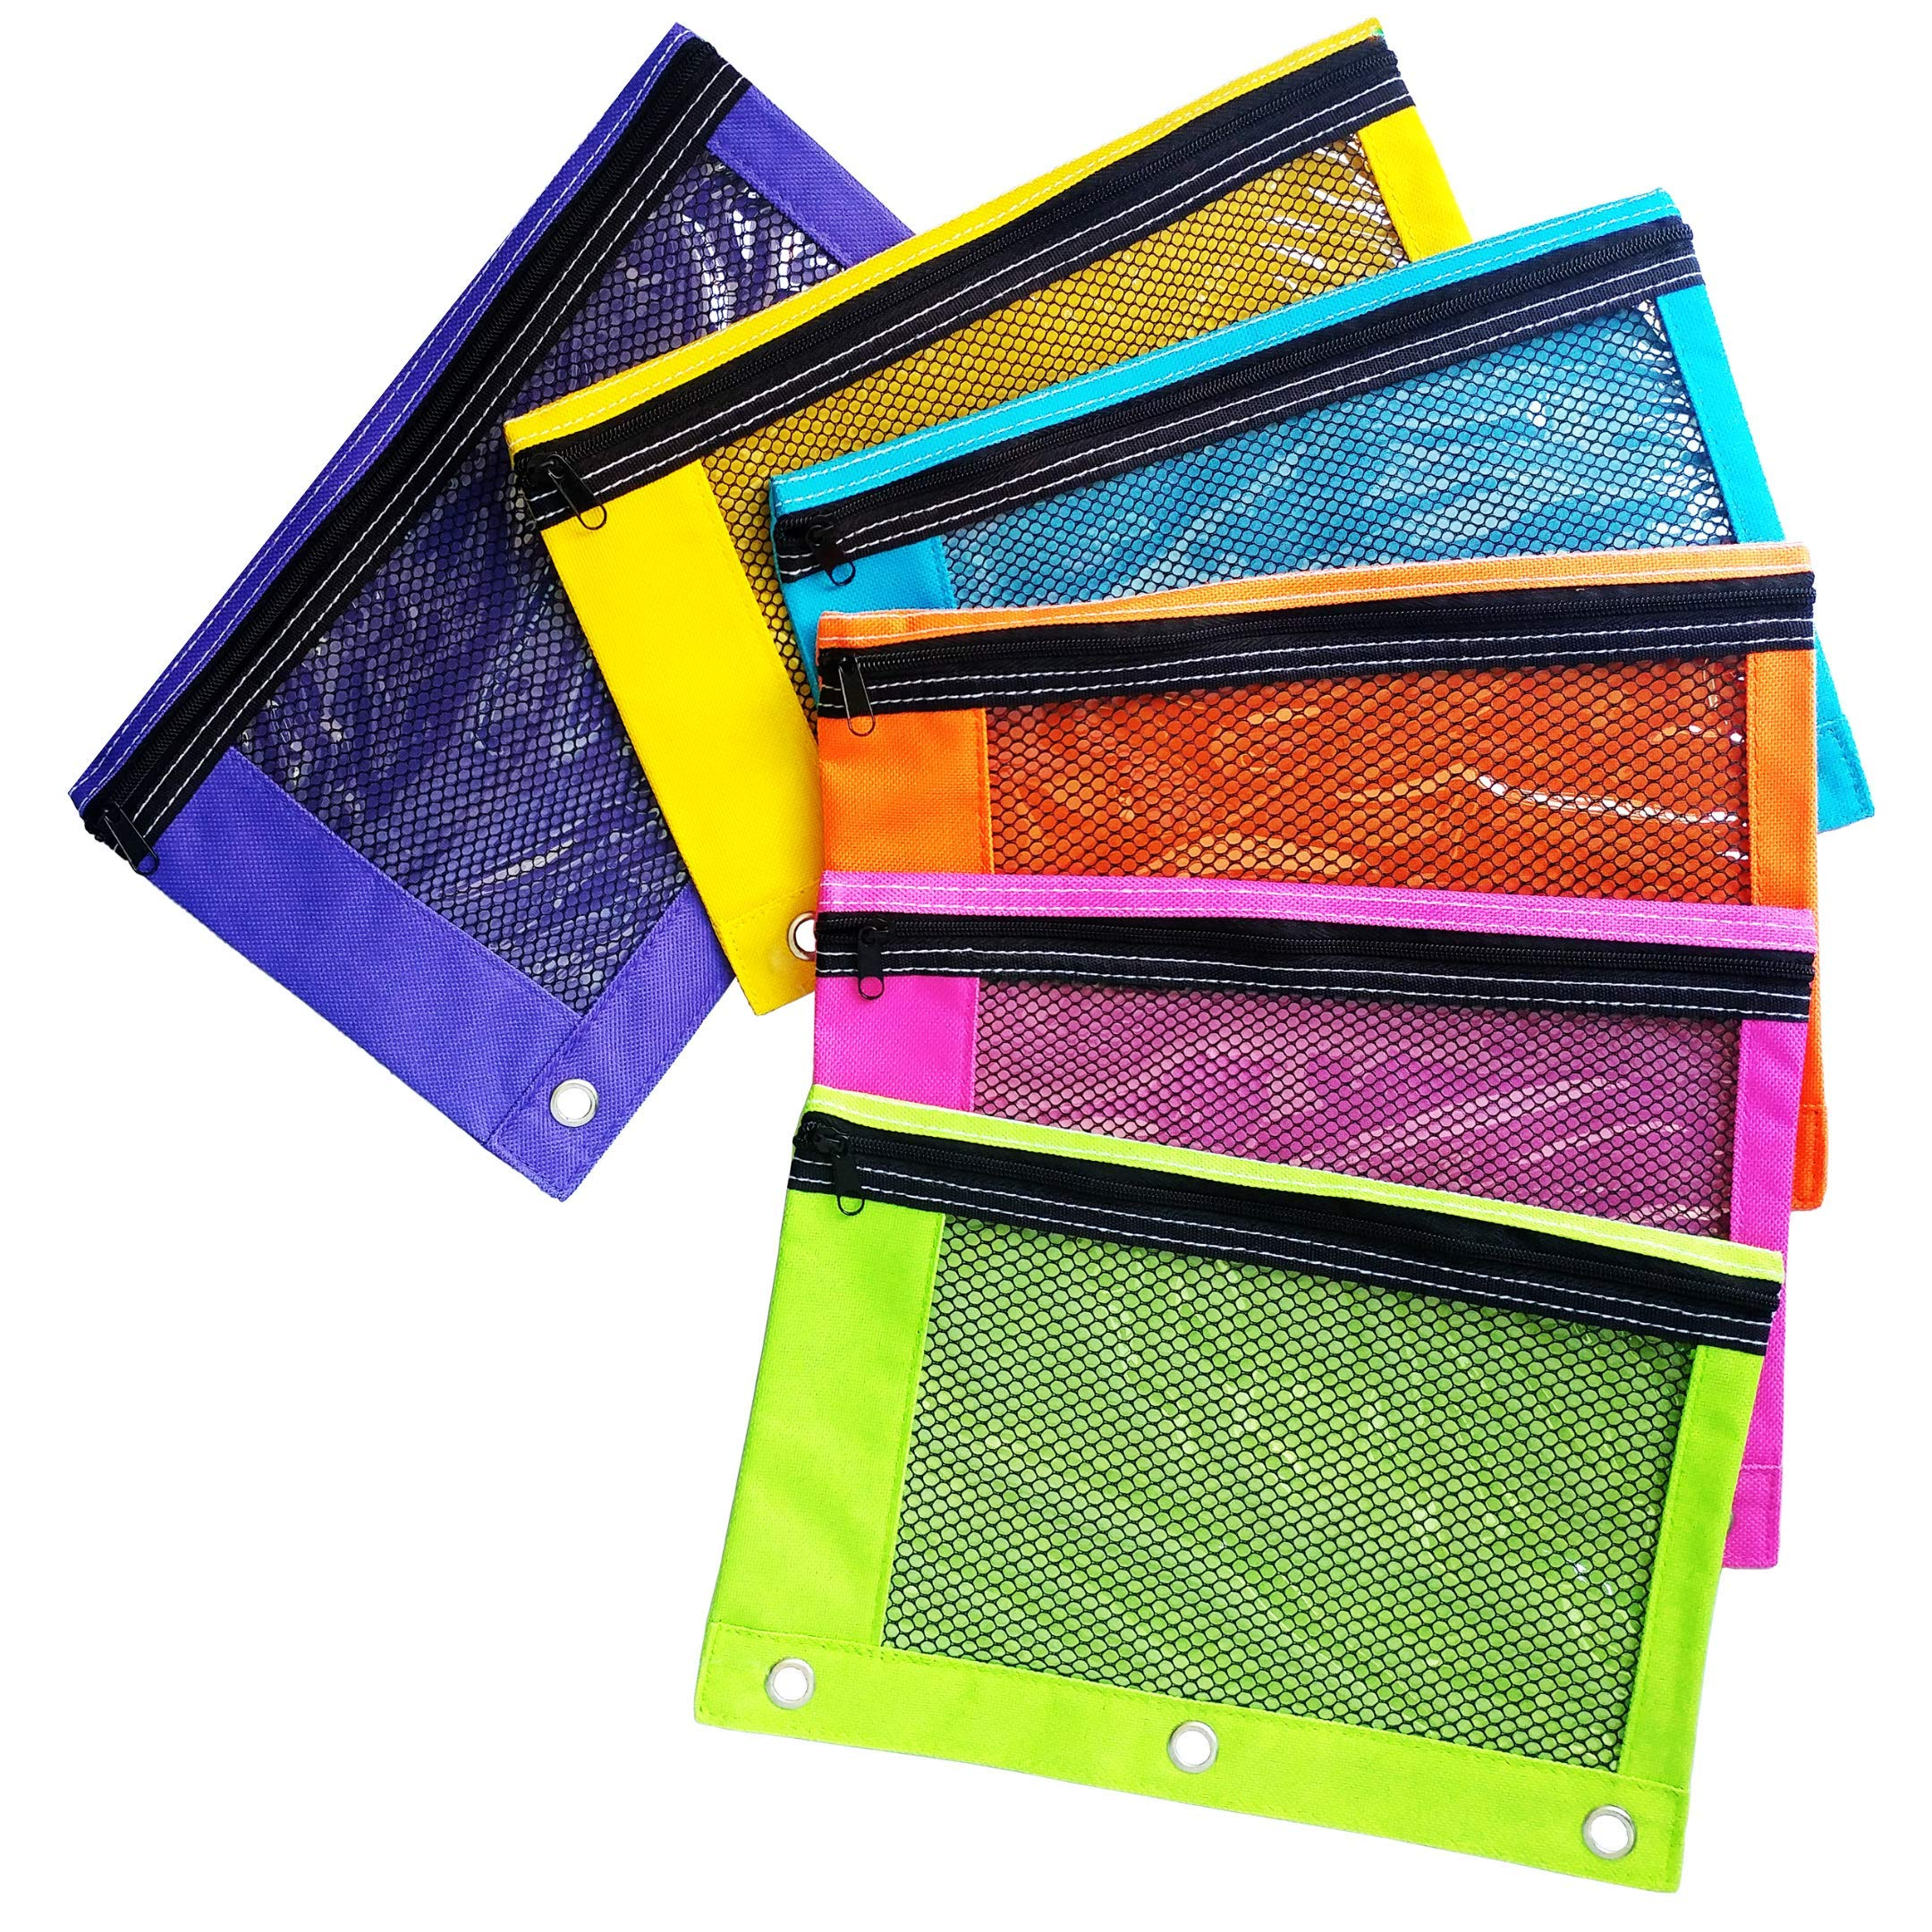 Zippered Pencil Pouches by School Smarts - 3 Ring Pencil Case with Mesh and plastic window. Huge 30 Pack with a Variation of 6 Bright Colors. by School Smarts